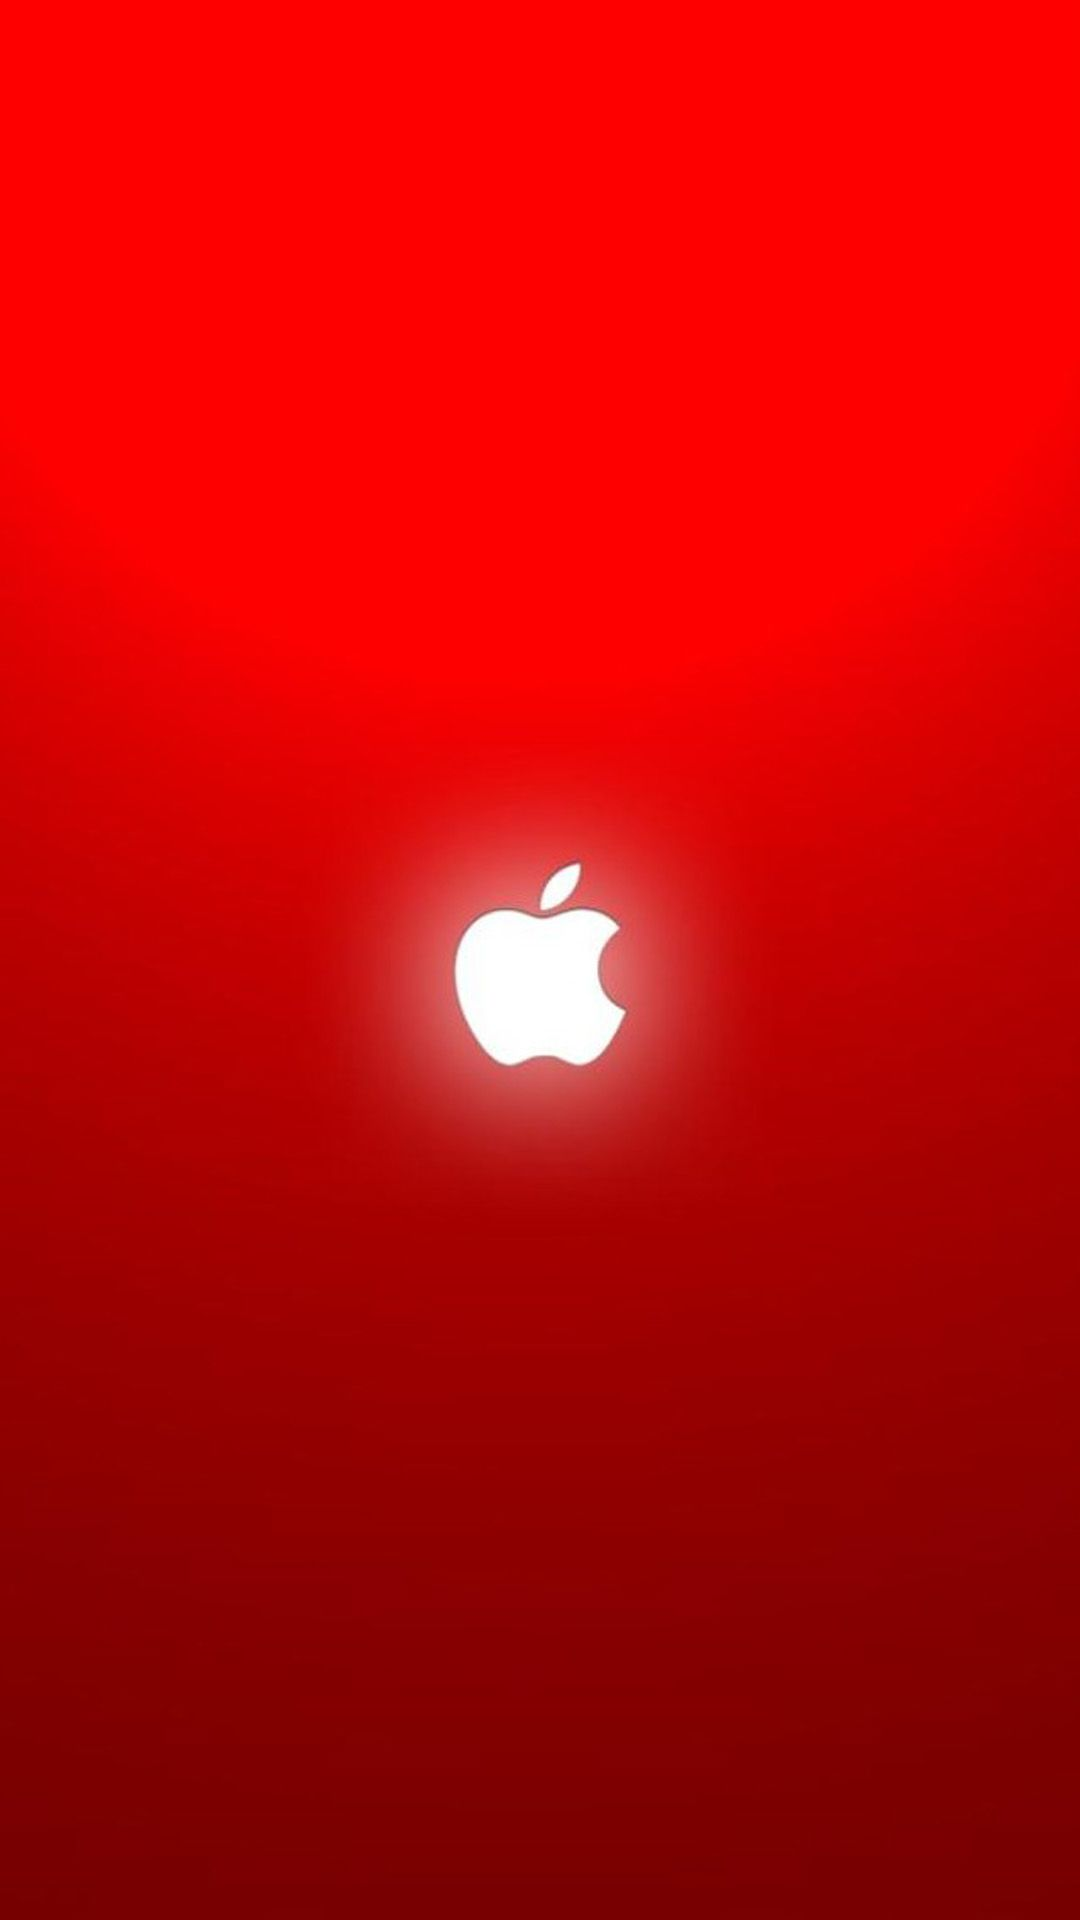 1080x1920 View source image | Apple Fever! in 2019 | Pinterest | Iphone ...